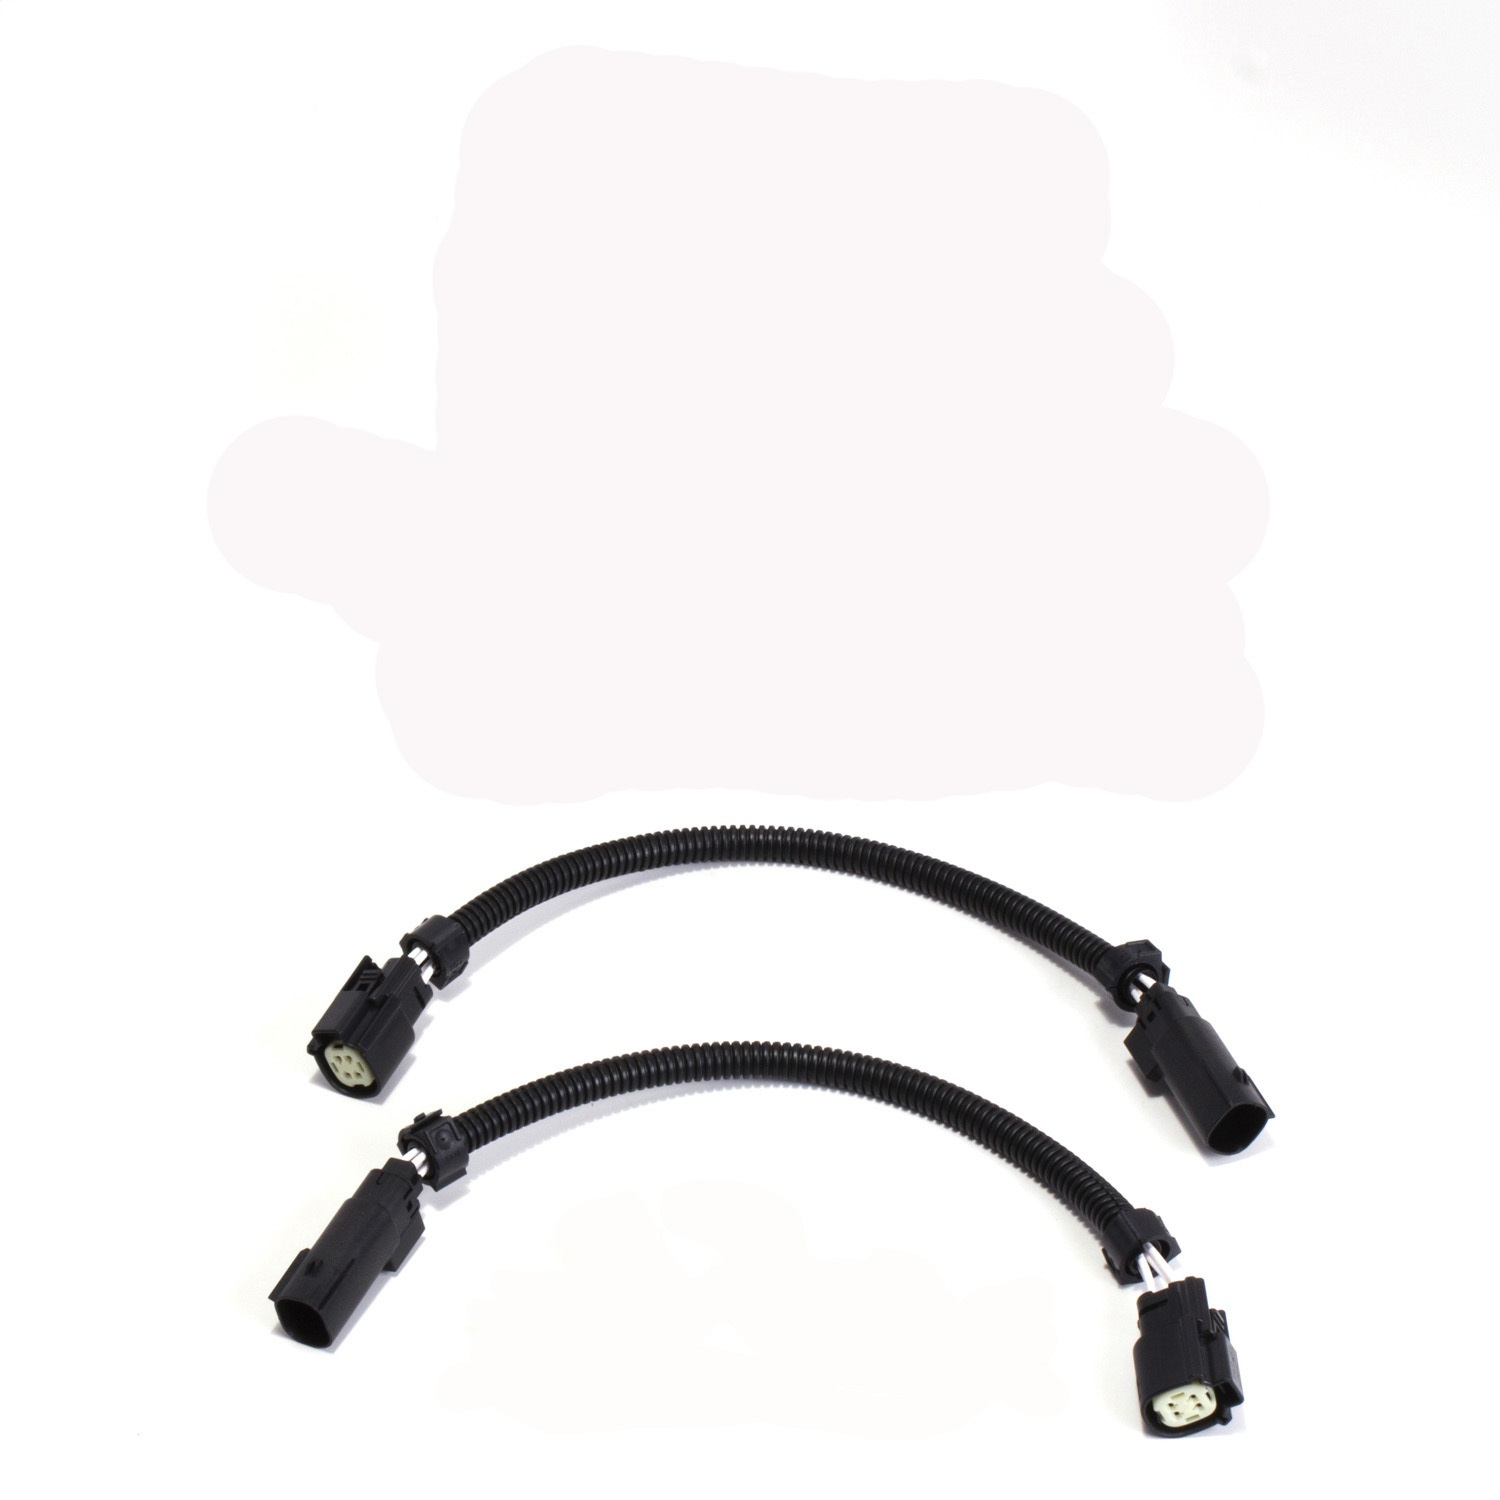 BBK Performance 1121 O2 Sensor Wire Extension Harness Fits 18-20 Mustang